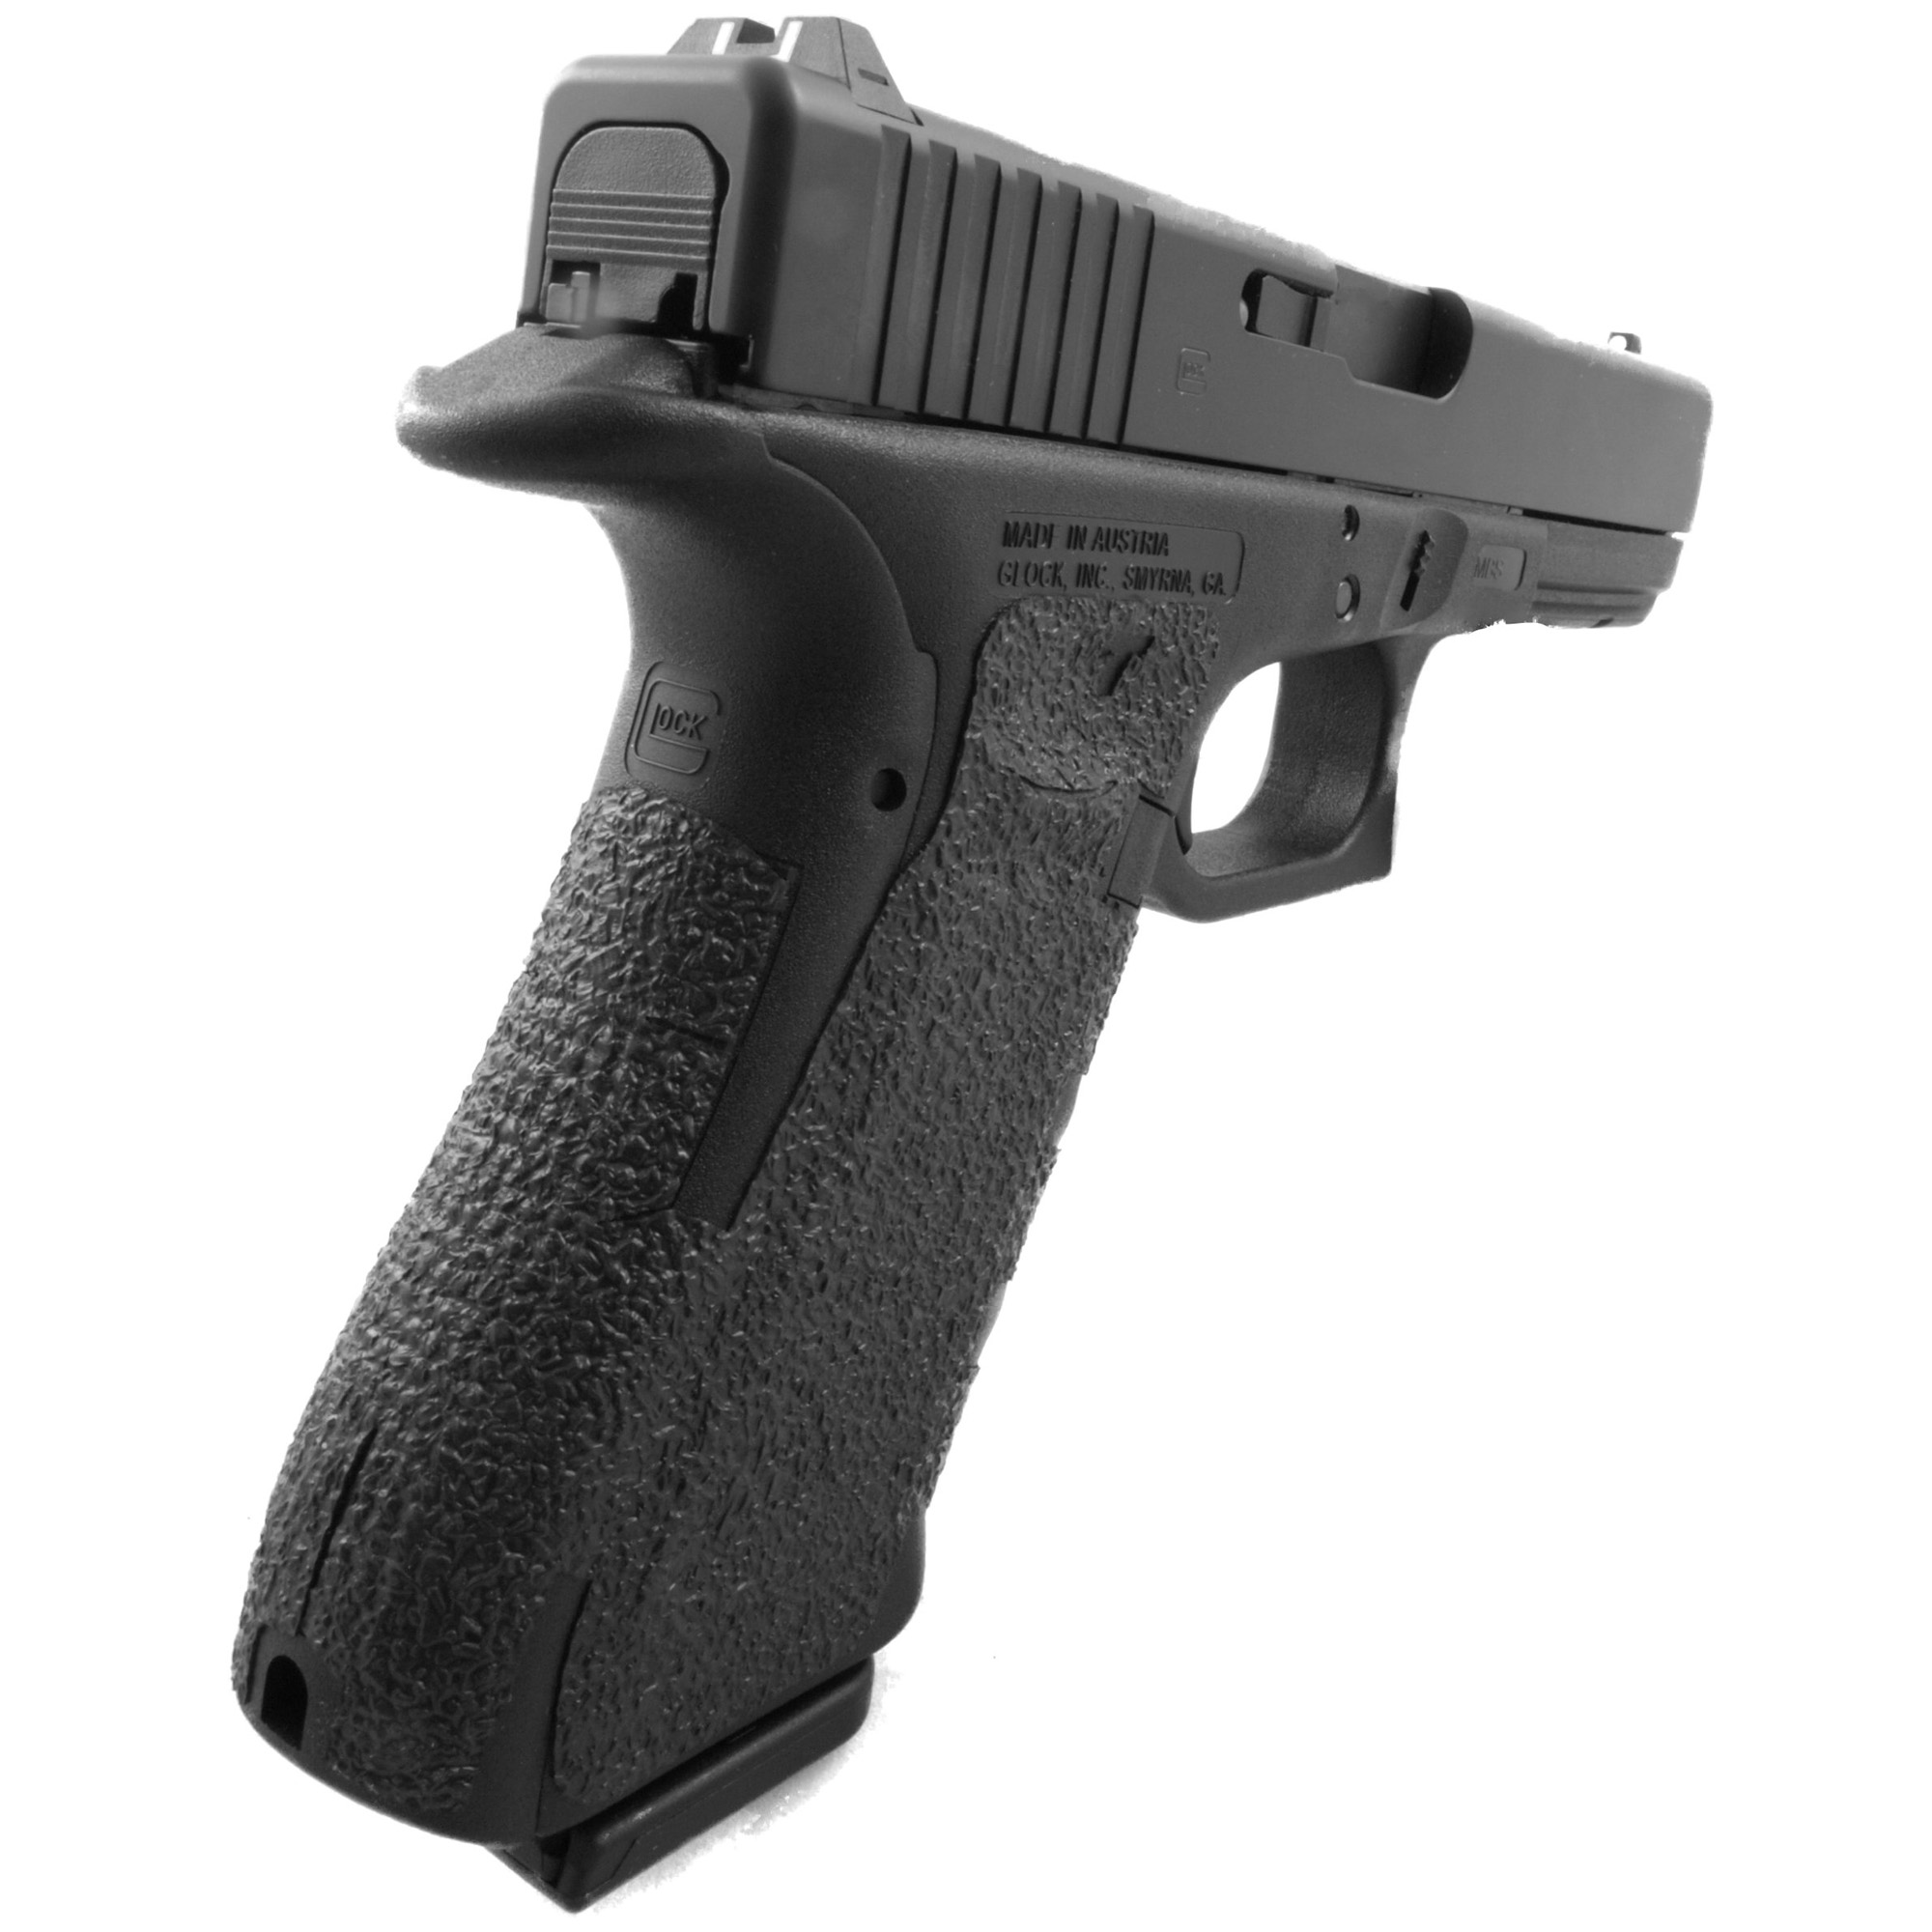 """TALON Grips for Glock Gen 4 Model 17"""" 22"""" 24"""" 31"""" 34"""" 35"""" and 37 with No Backstrap. This rear wrap grip is in the rubber texture. This grip provides full coverage on the side panels including above the thumb rest"""" ample coverage on the backstrap"""" and three finger wraps for the finger groves under the trigger guard. This grip has a logo cutout for the Glock emblem on the left side of the handle. This grip sticks extremely well even with the Rough Textured Frame (RTF)."""